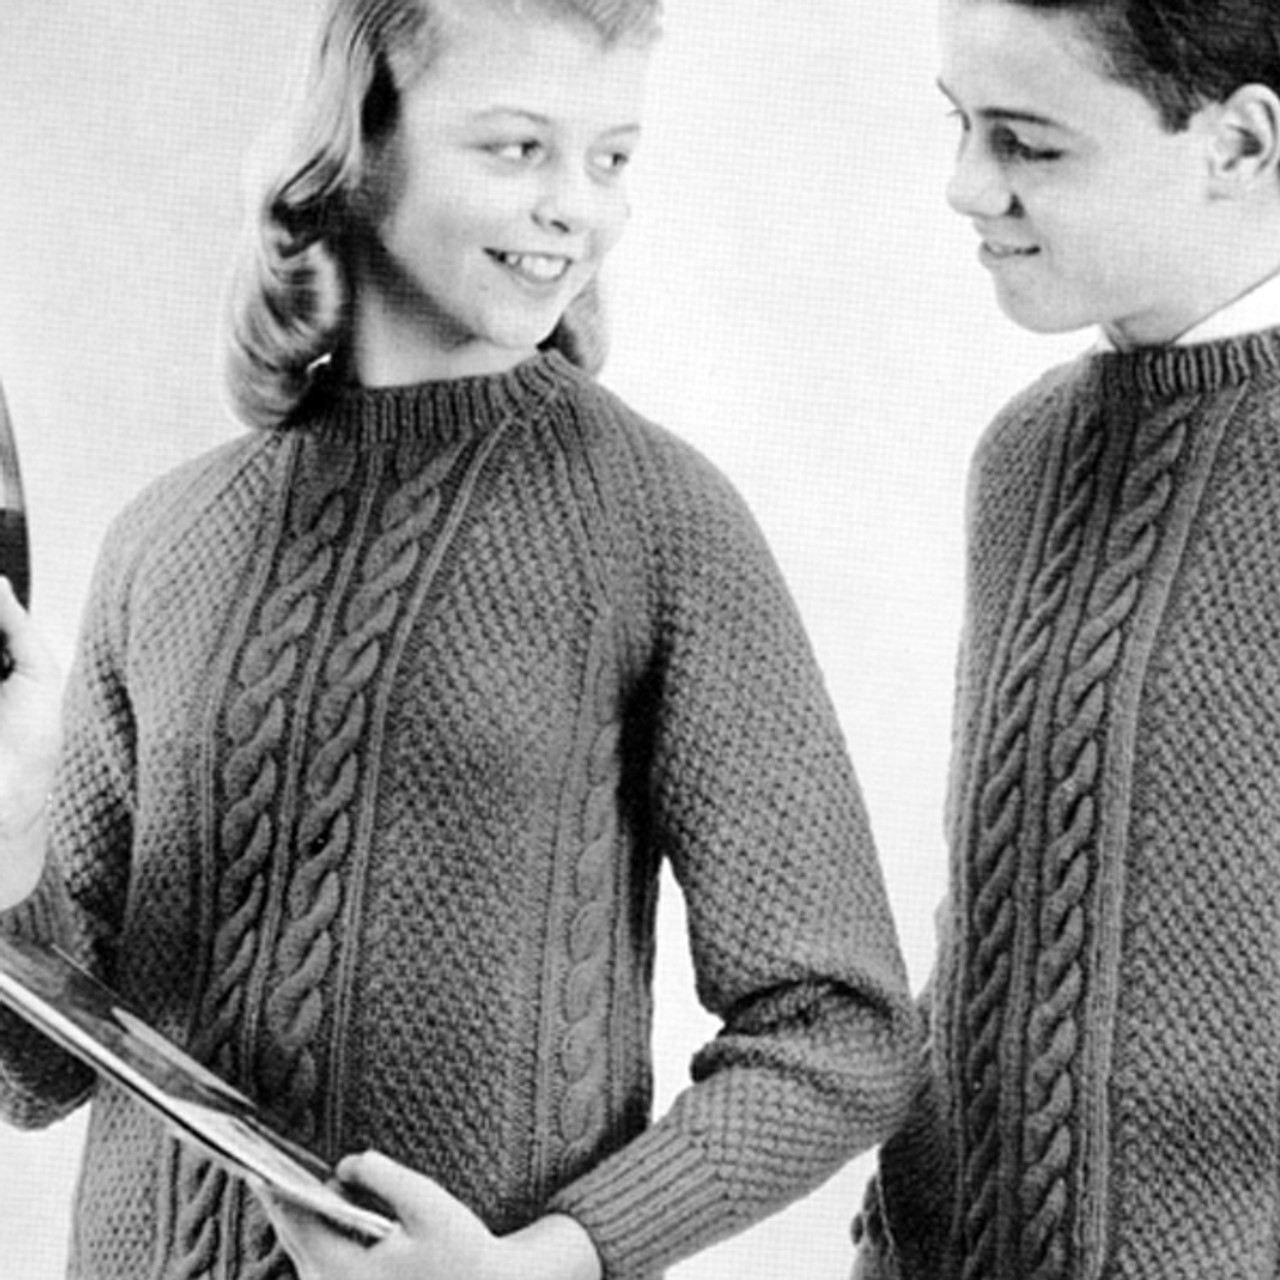 Girls Knitted Pullover Pattern